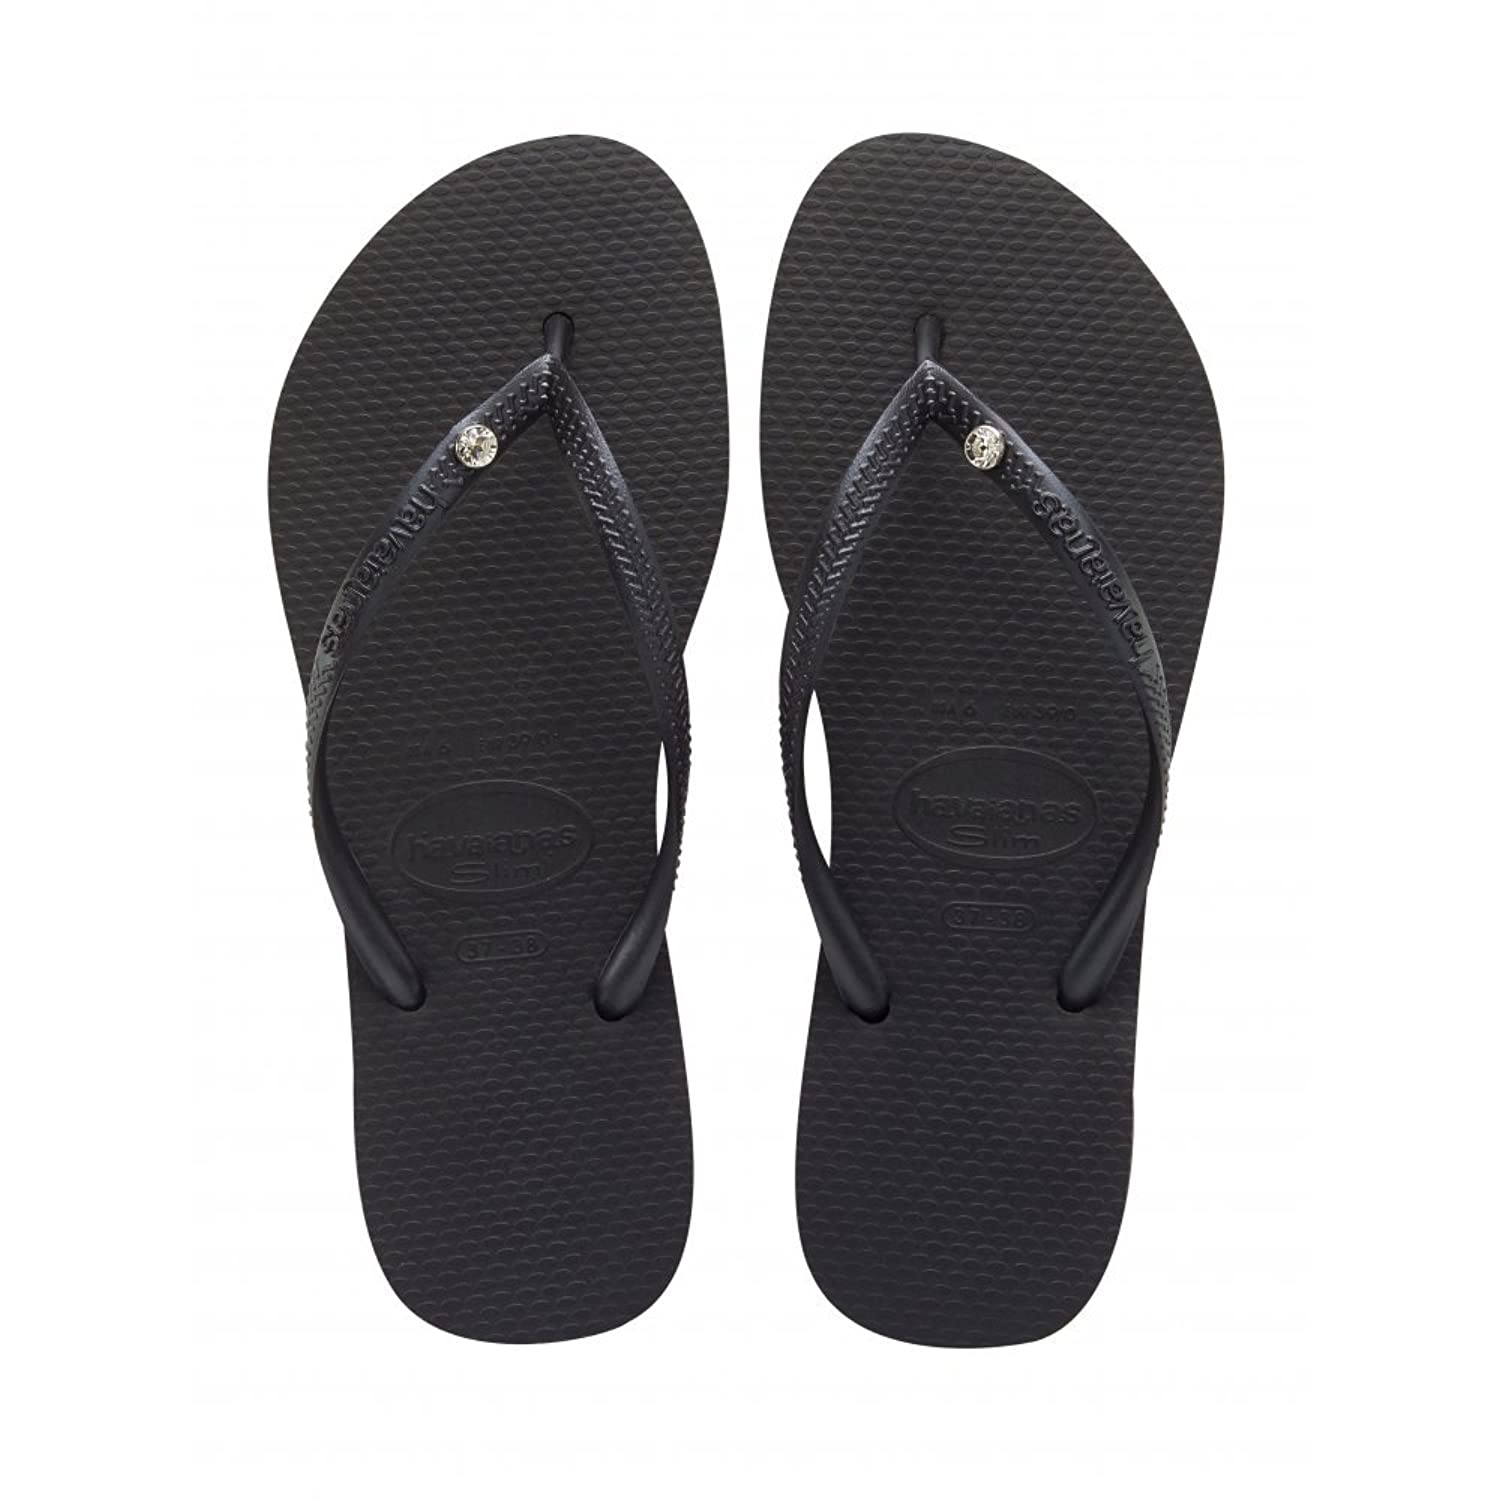 Womens Havaianas Crystal Glamour Black Flip Flops SIZE 3/4 BRA 35/36:  Amazon.co.uk: Shoes & Bags